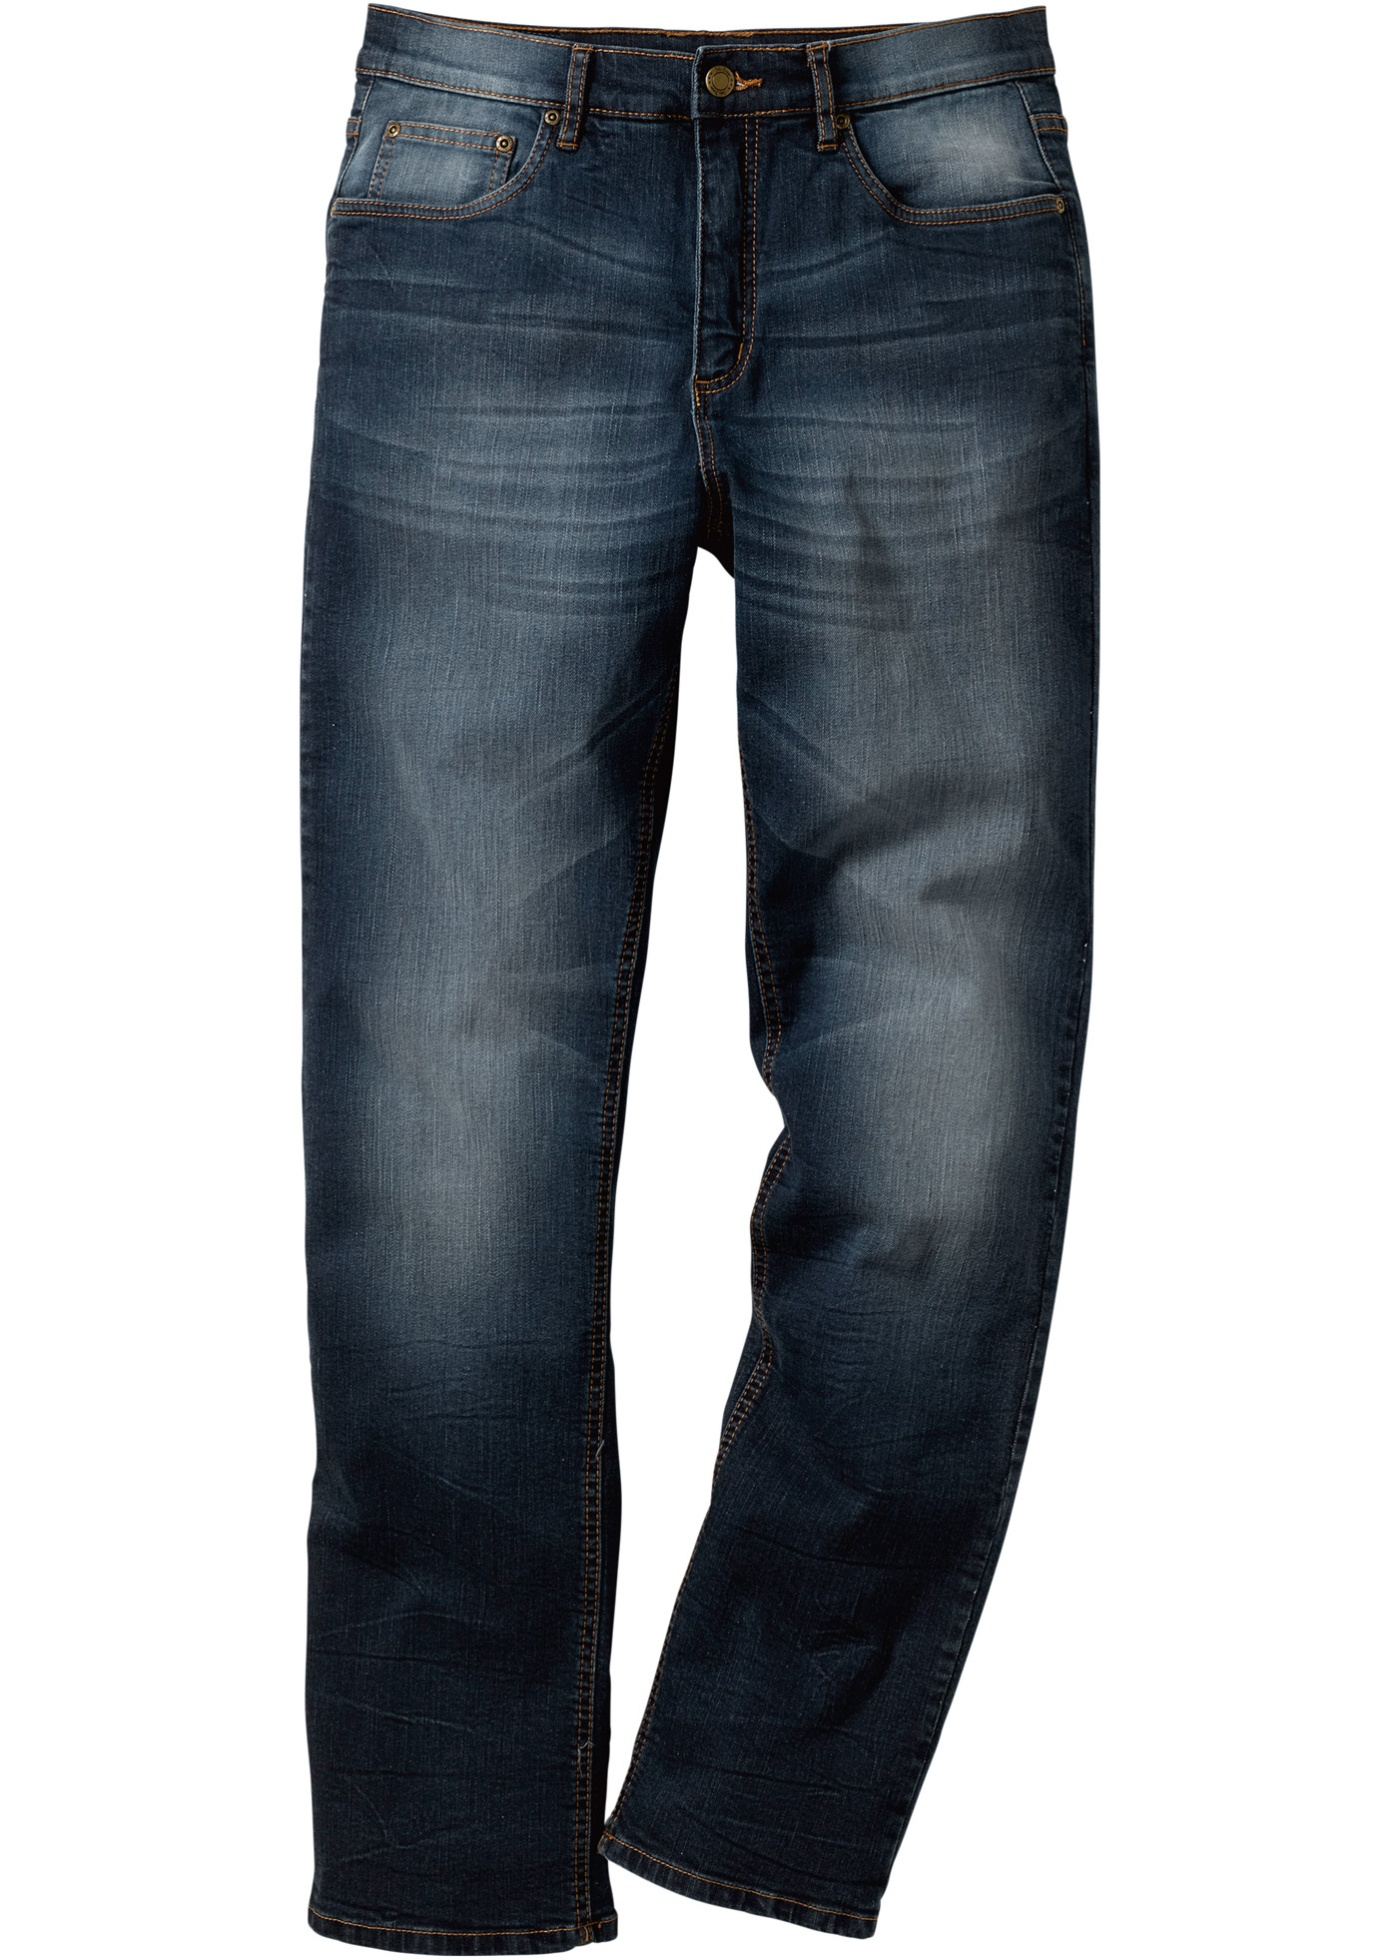 Jean extensible classic fit